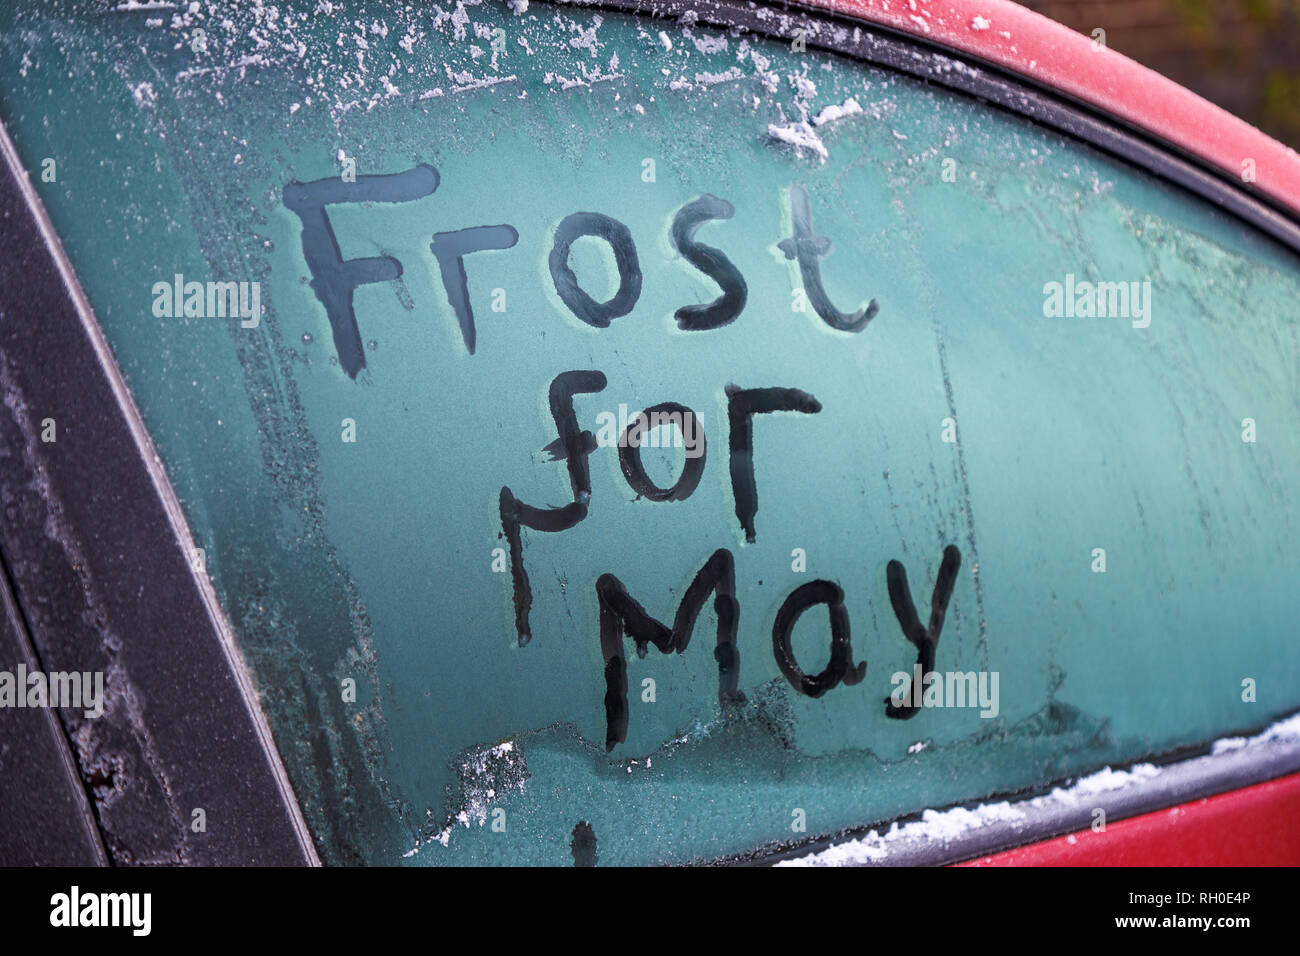 Woking, Surrey, south-east England, UK, 31st January 2019. UK Weather:  'Frost for May': A message is written on a frozen car window in the morning after the coldest night in the UK so far this winter as Prime Minister Theresa May prepares to renegotiate the UK's Brexit agreement with EU negotiators.  Credit: Graham Prentice/Alamy Live News. - Stock Image